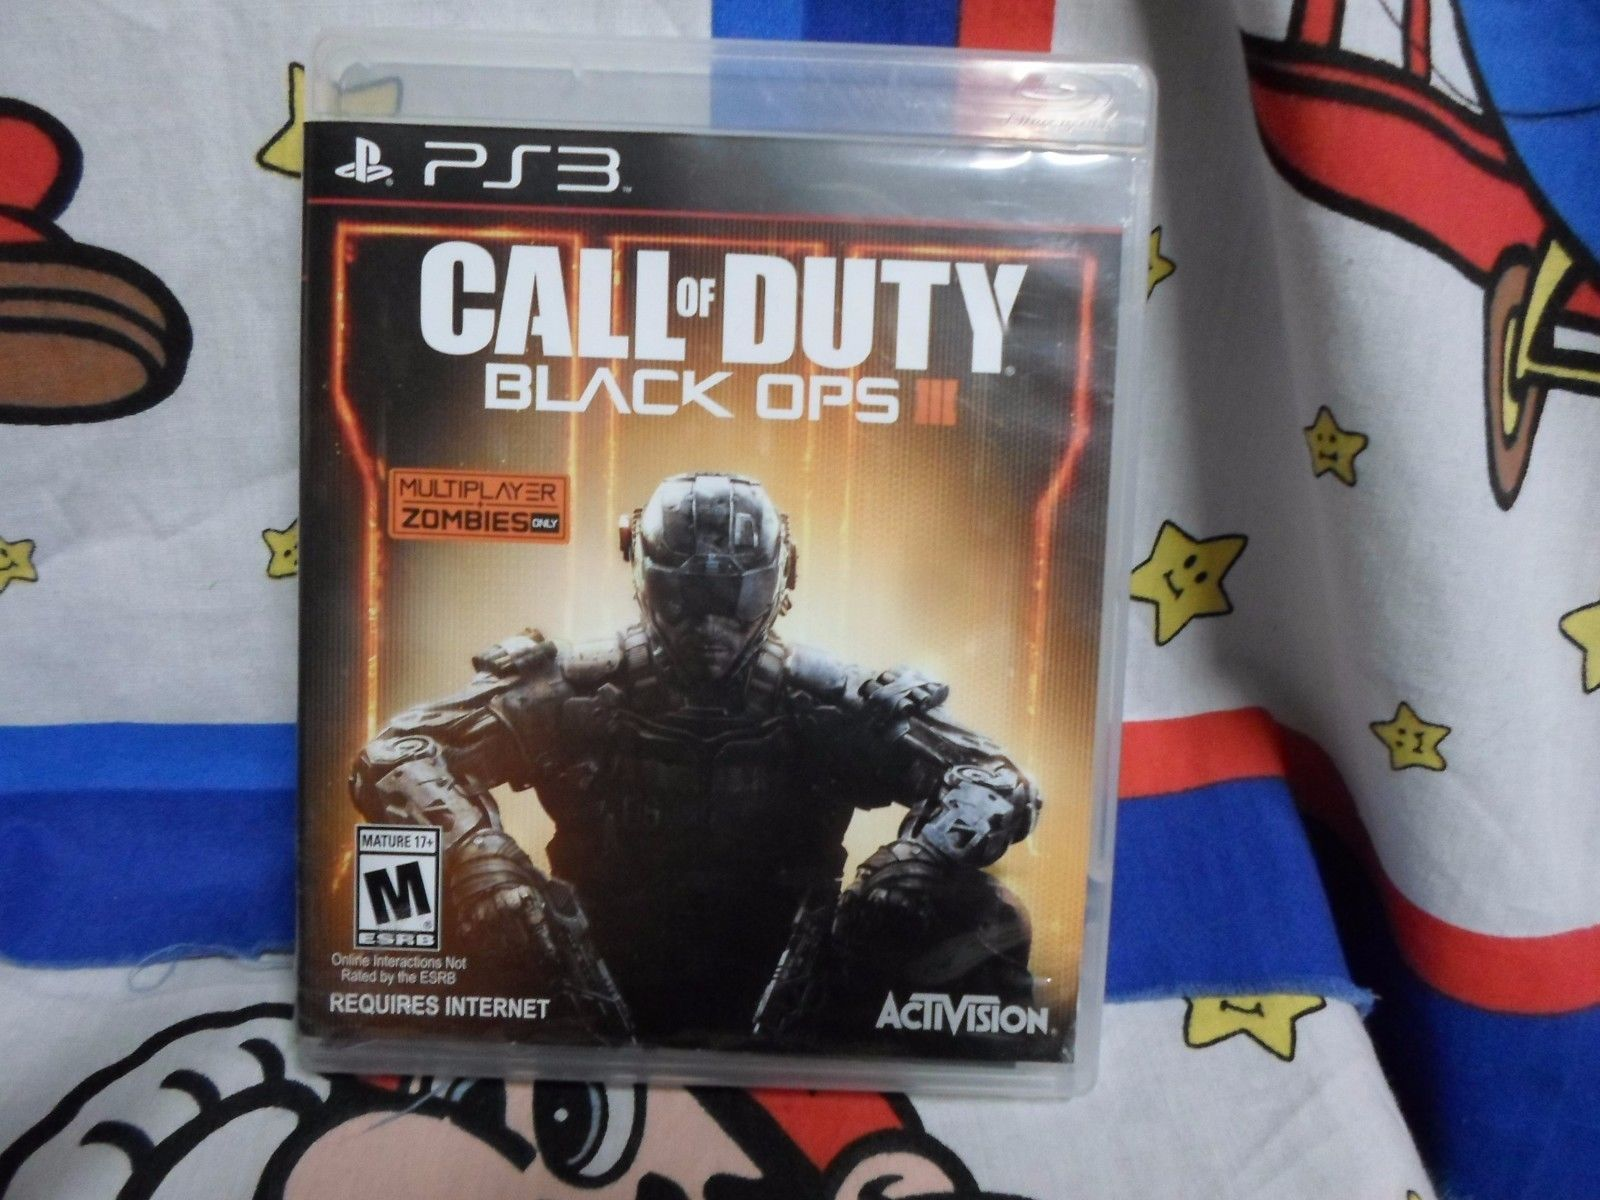 Playstation 3 Call of Duty Black Ops III Game COMPLETE https://t.co/icRN5gyPl9 https://t.co/86UtFR8kXI